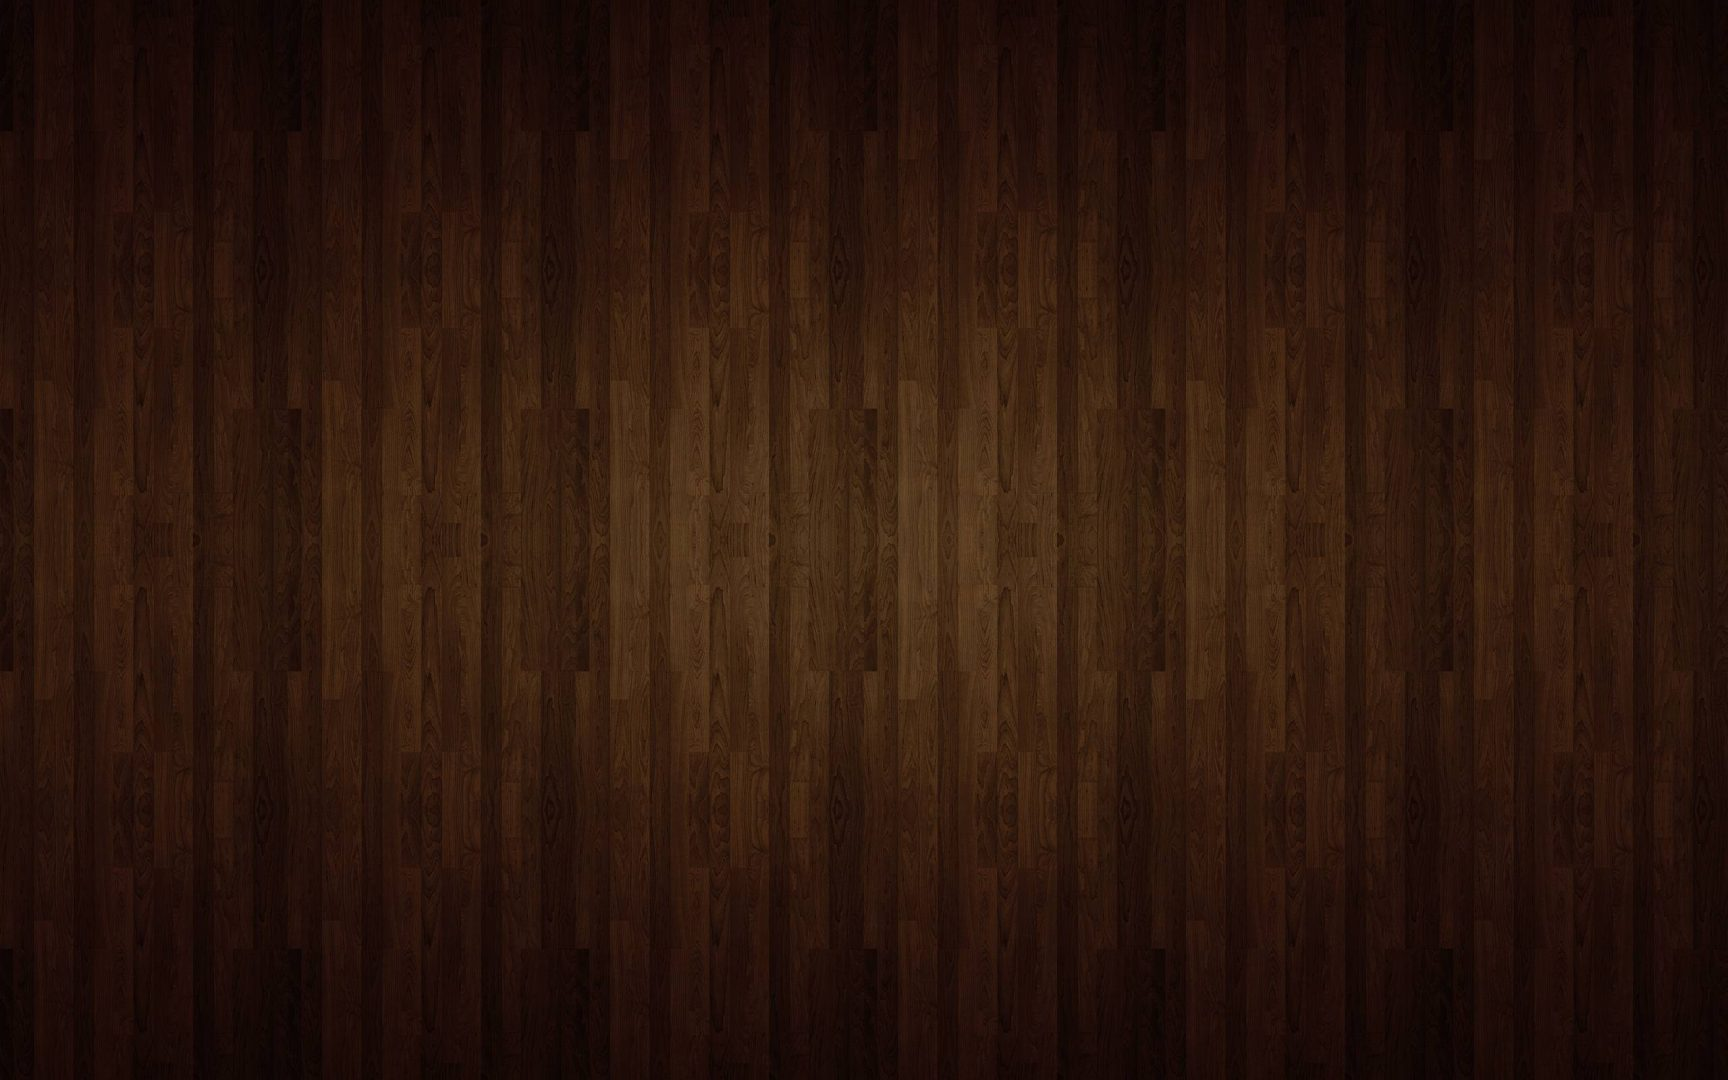 High Res Wood Background Wallpaper Plumpton Park Zoo